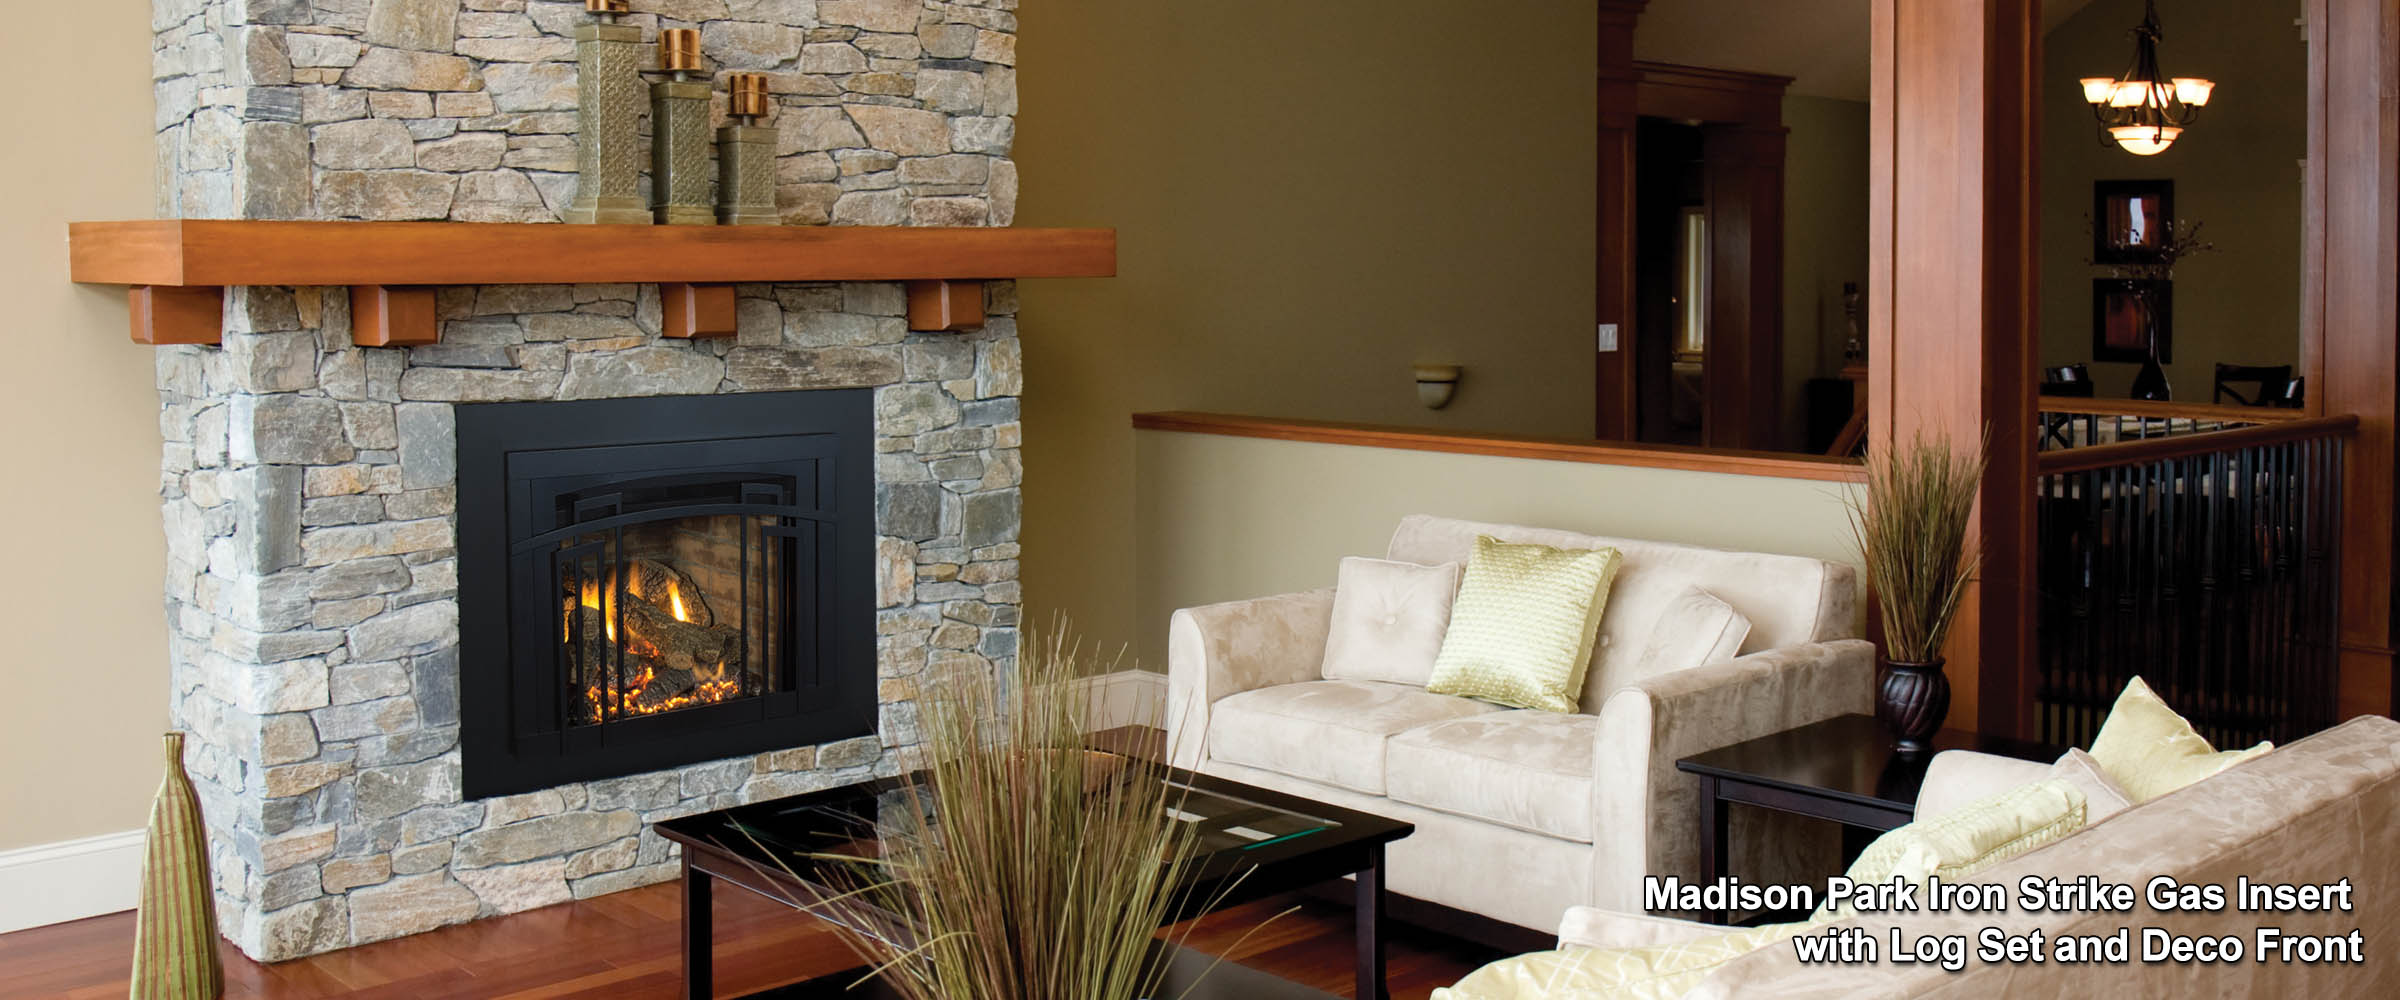 delco fireplaces